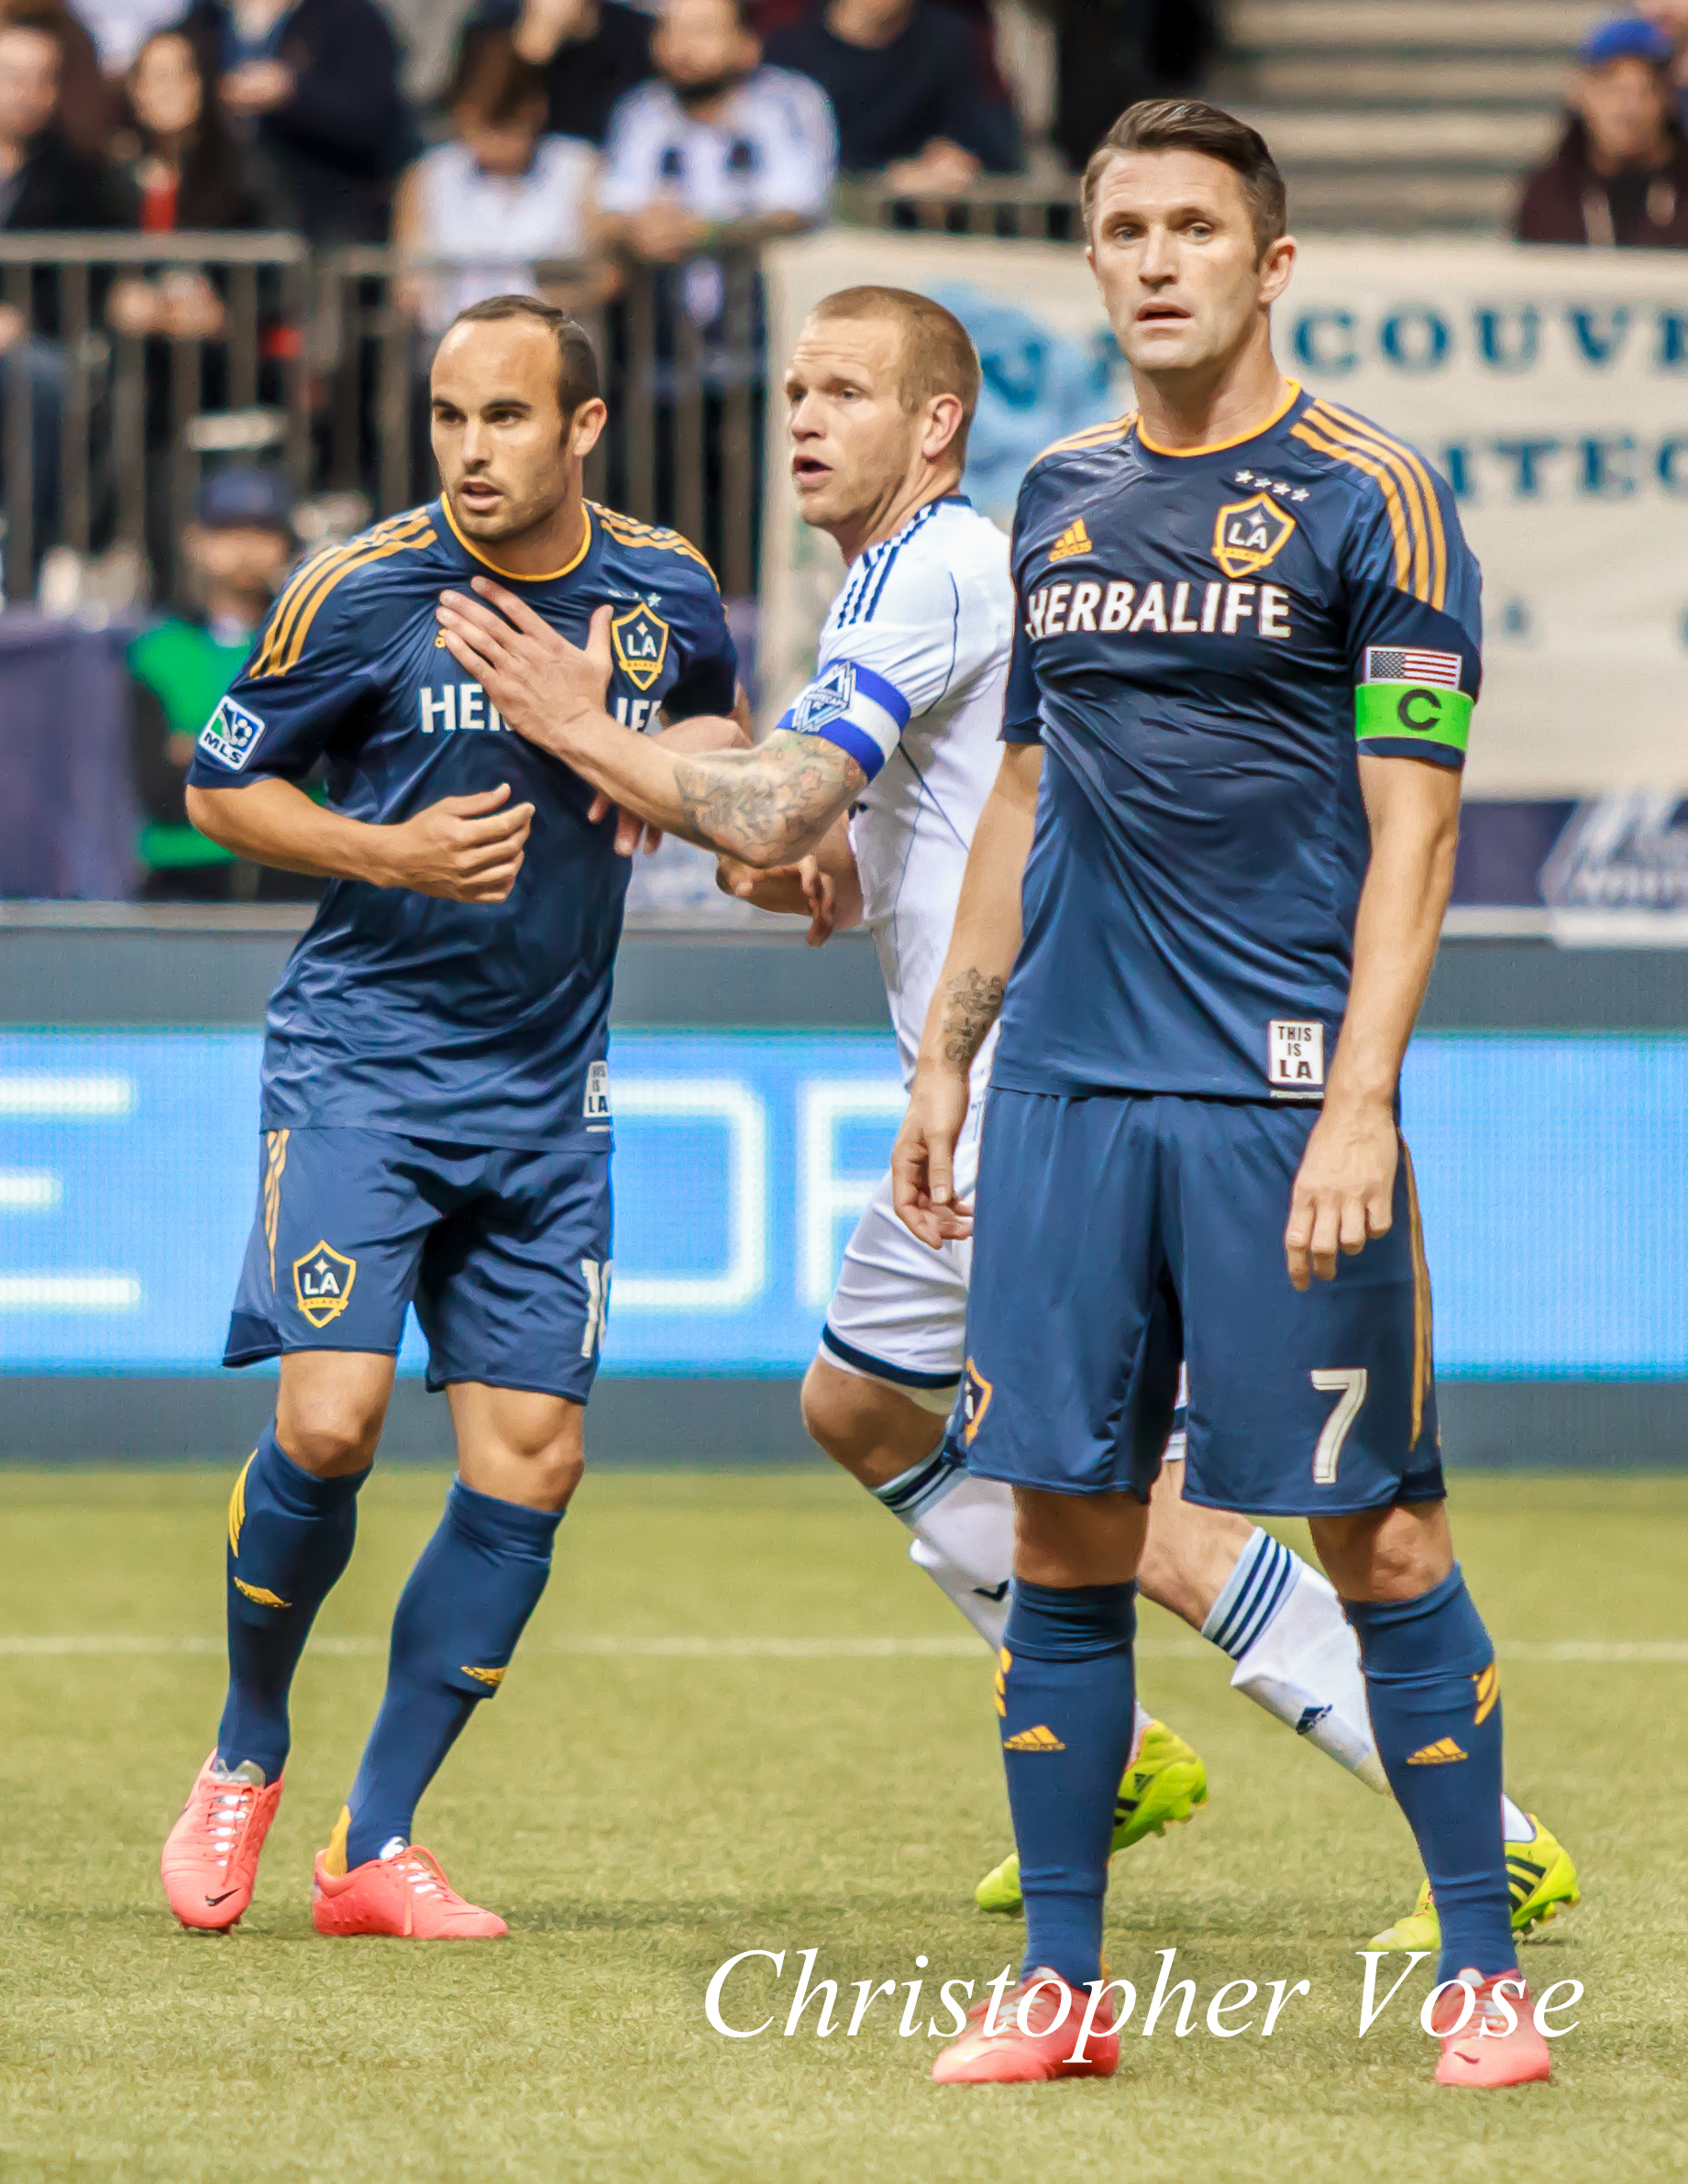 2014-04-19 Landon Donovan, Jay DeMerit, and Robbie Keane.jpg